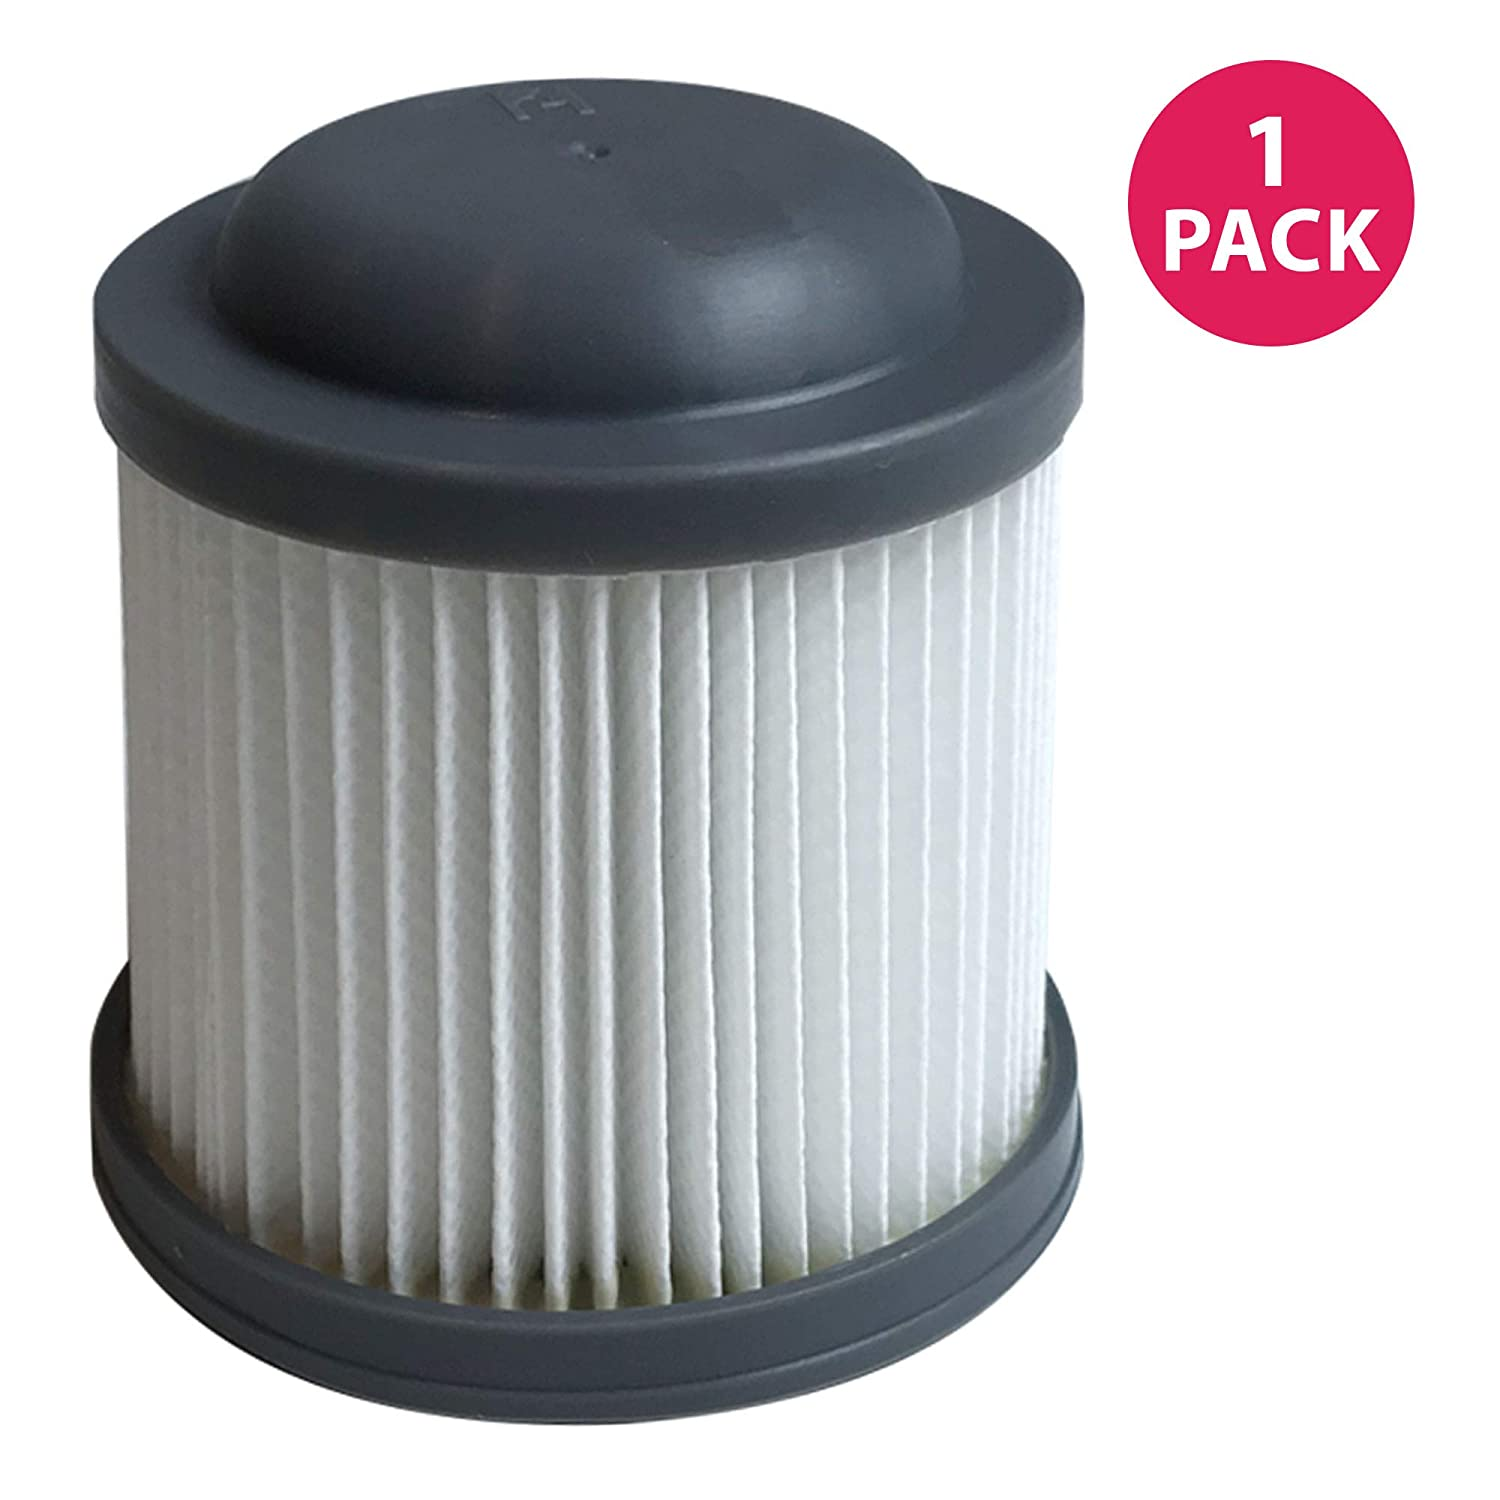 Think Crucial Replacement Vacuum Filters Compatible with Black and Decker Vacuums, Washable and Reusable Filter Part - Parts VF100, VF100H - Fits Model PVF110, PHV1210 and PHV1810 Bulk (1 Pack)